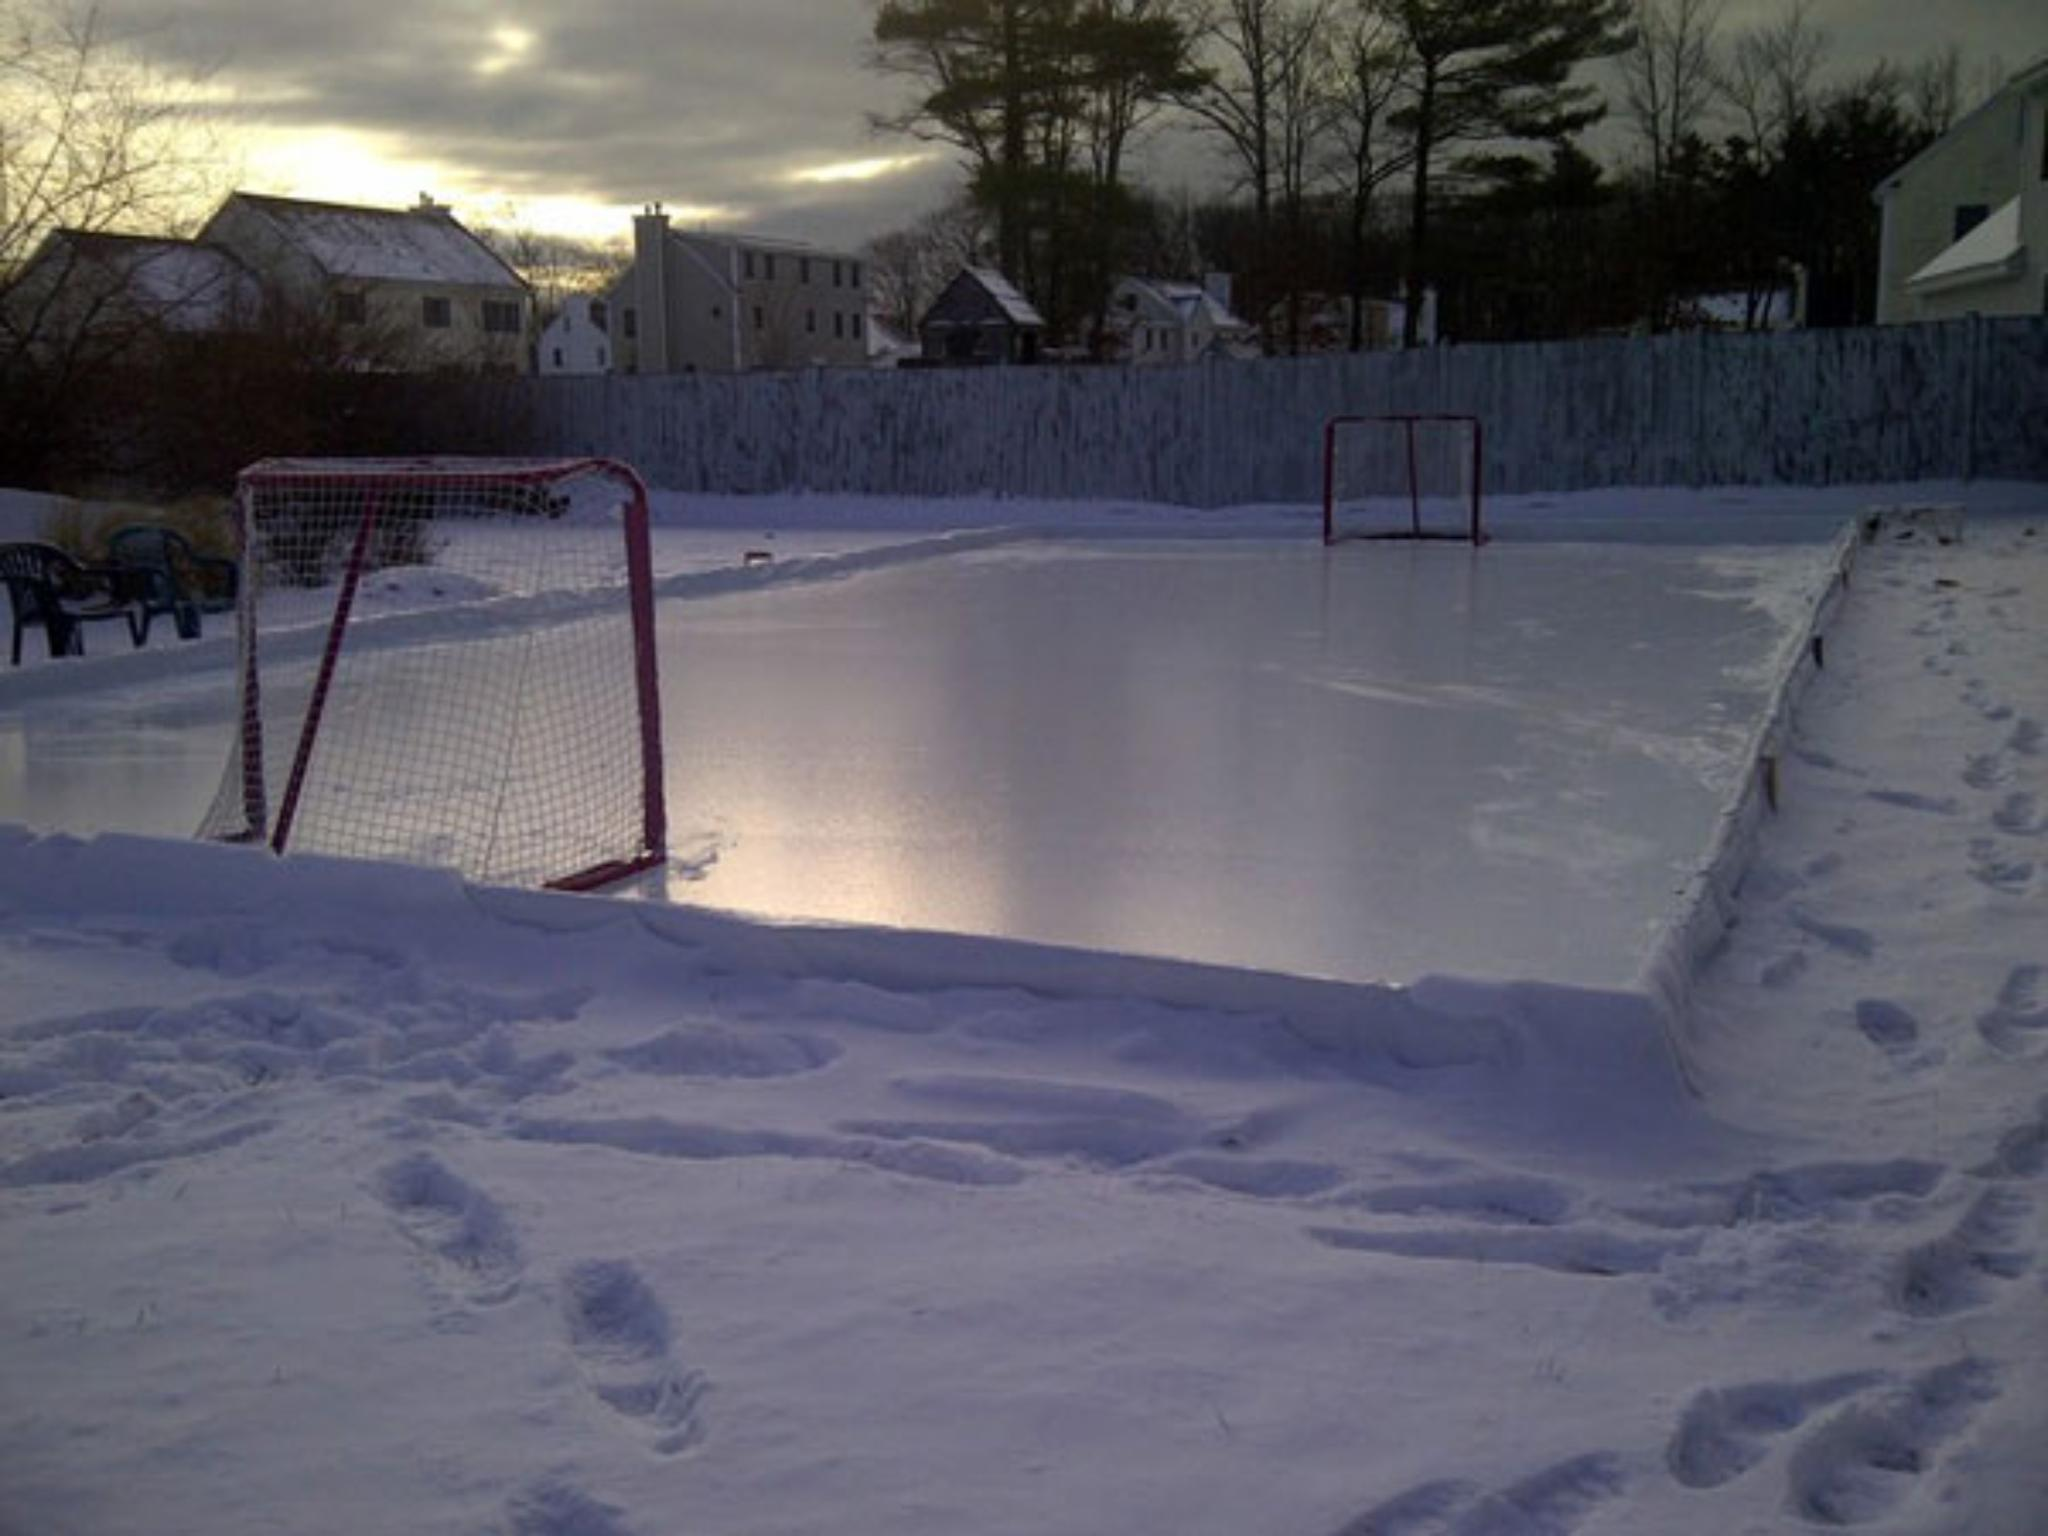 Rink Liner Consists of Two Top White Layers and One Bottom Black Layer, Bonded Together for 6mm Thickness. Multiple Sizes Available.